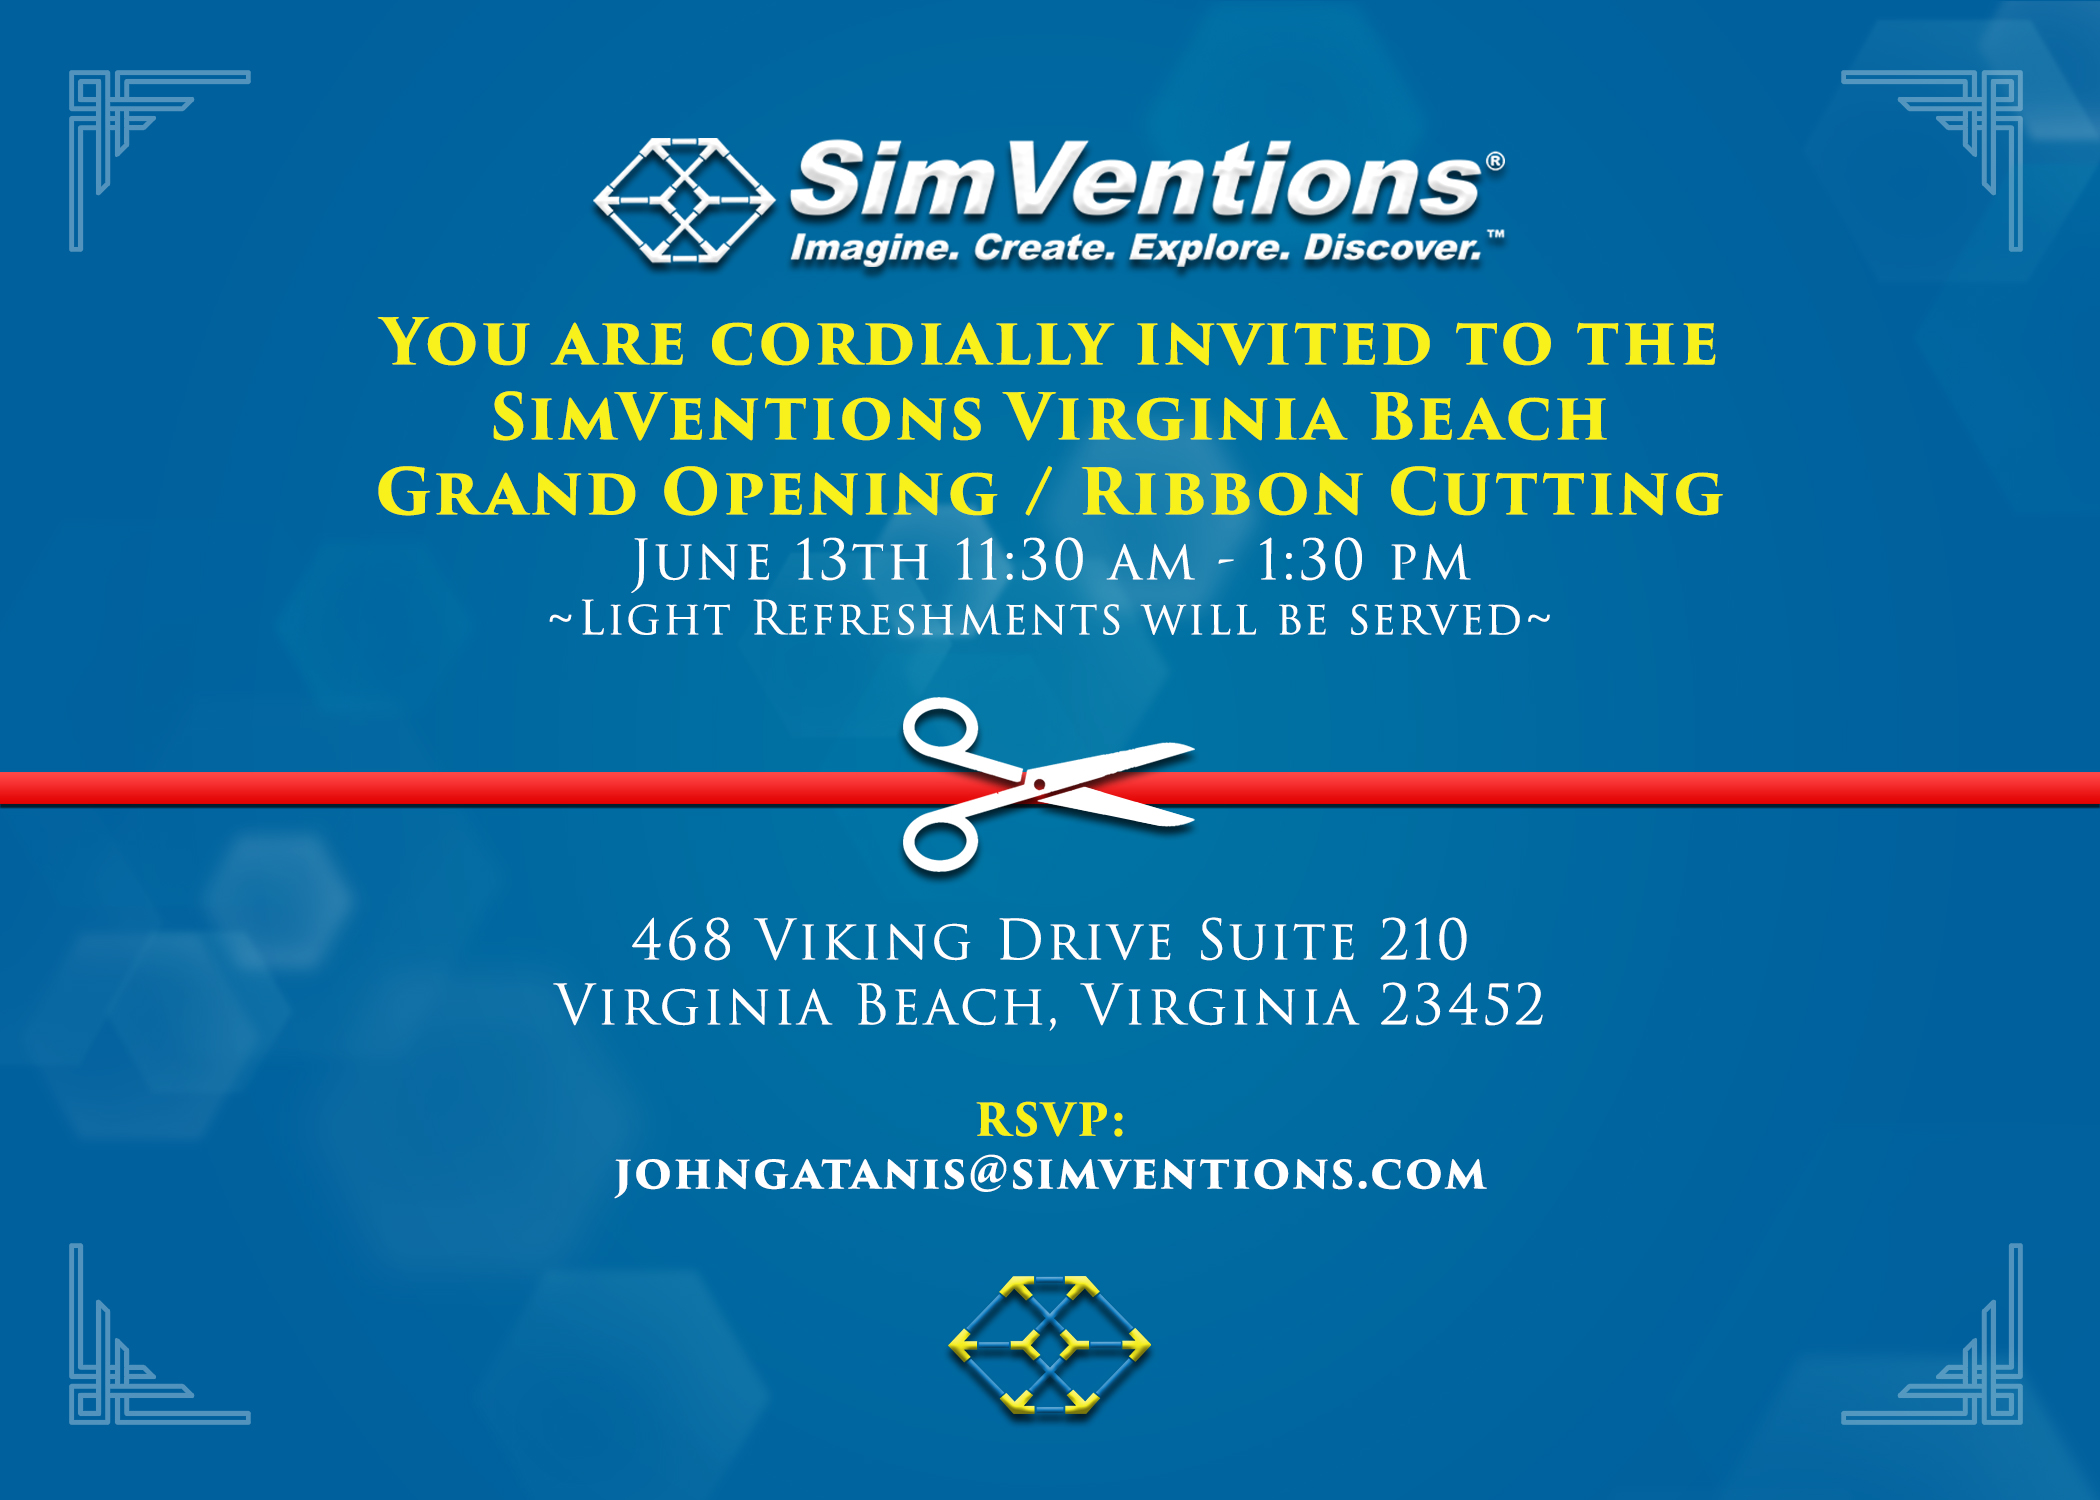 SimVentions Ribbon Cutting Ceremony